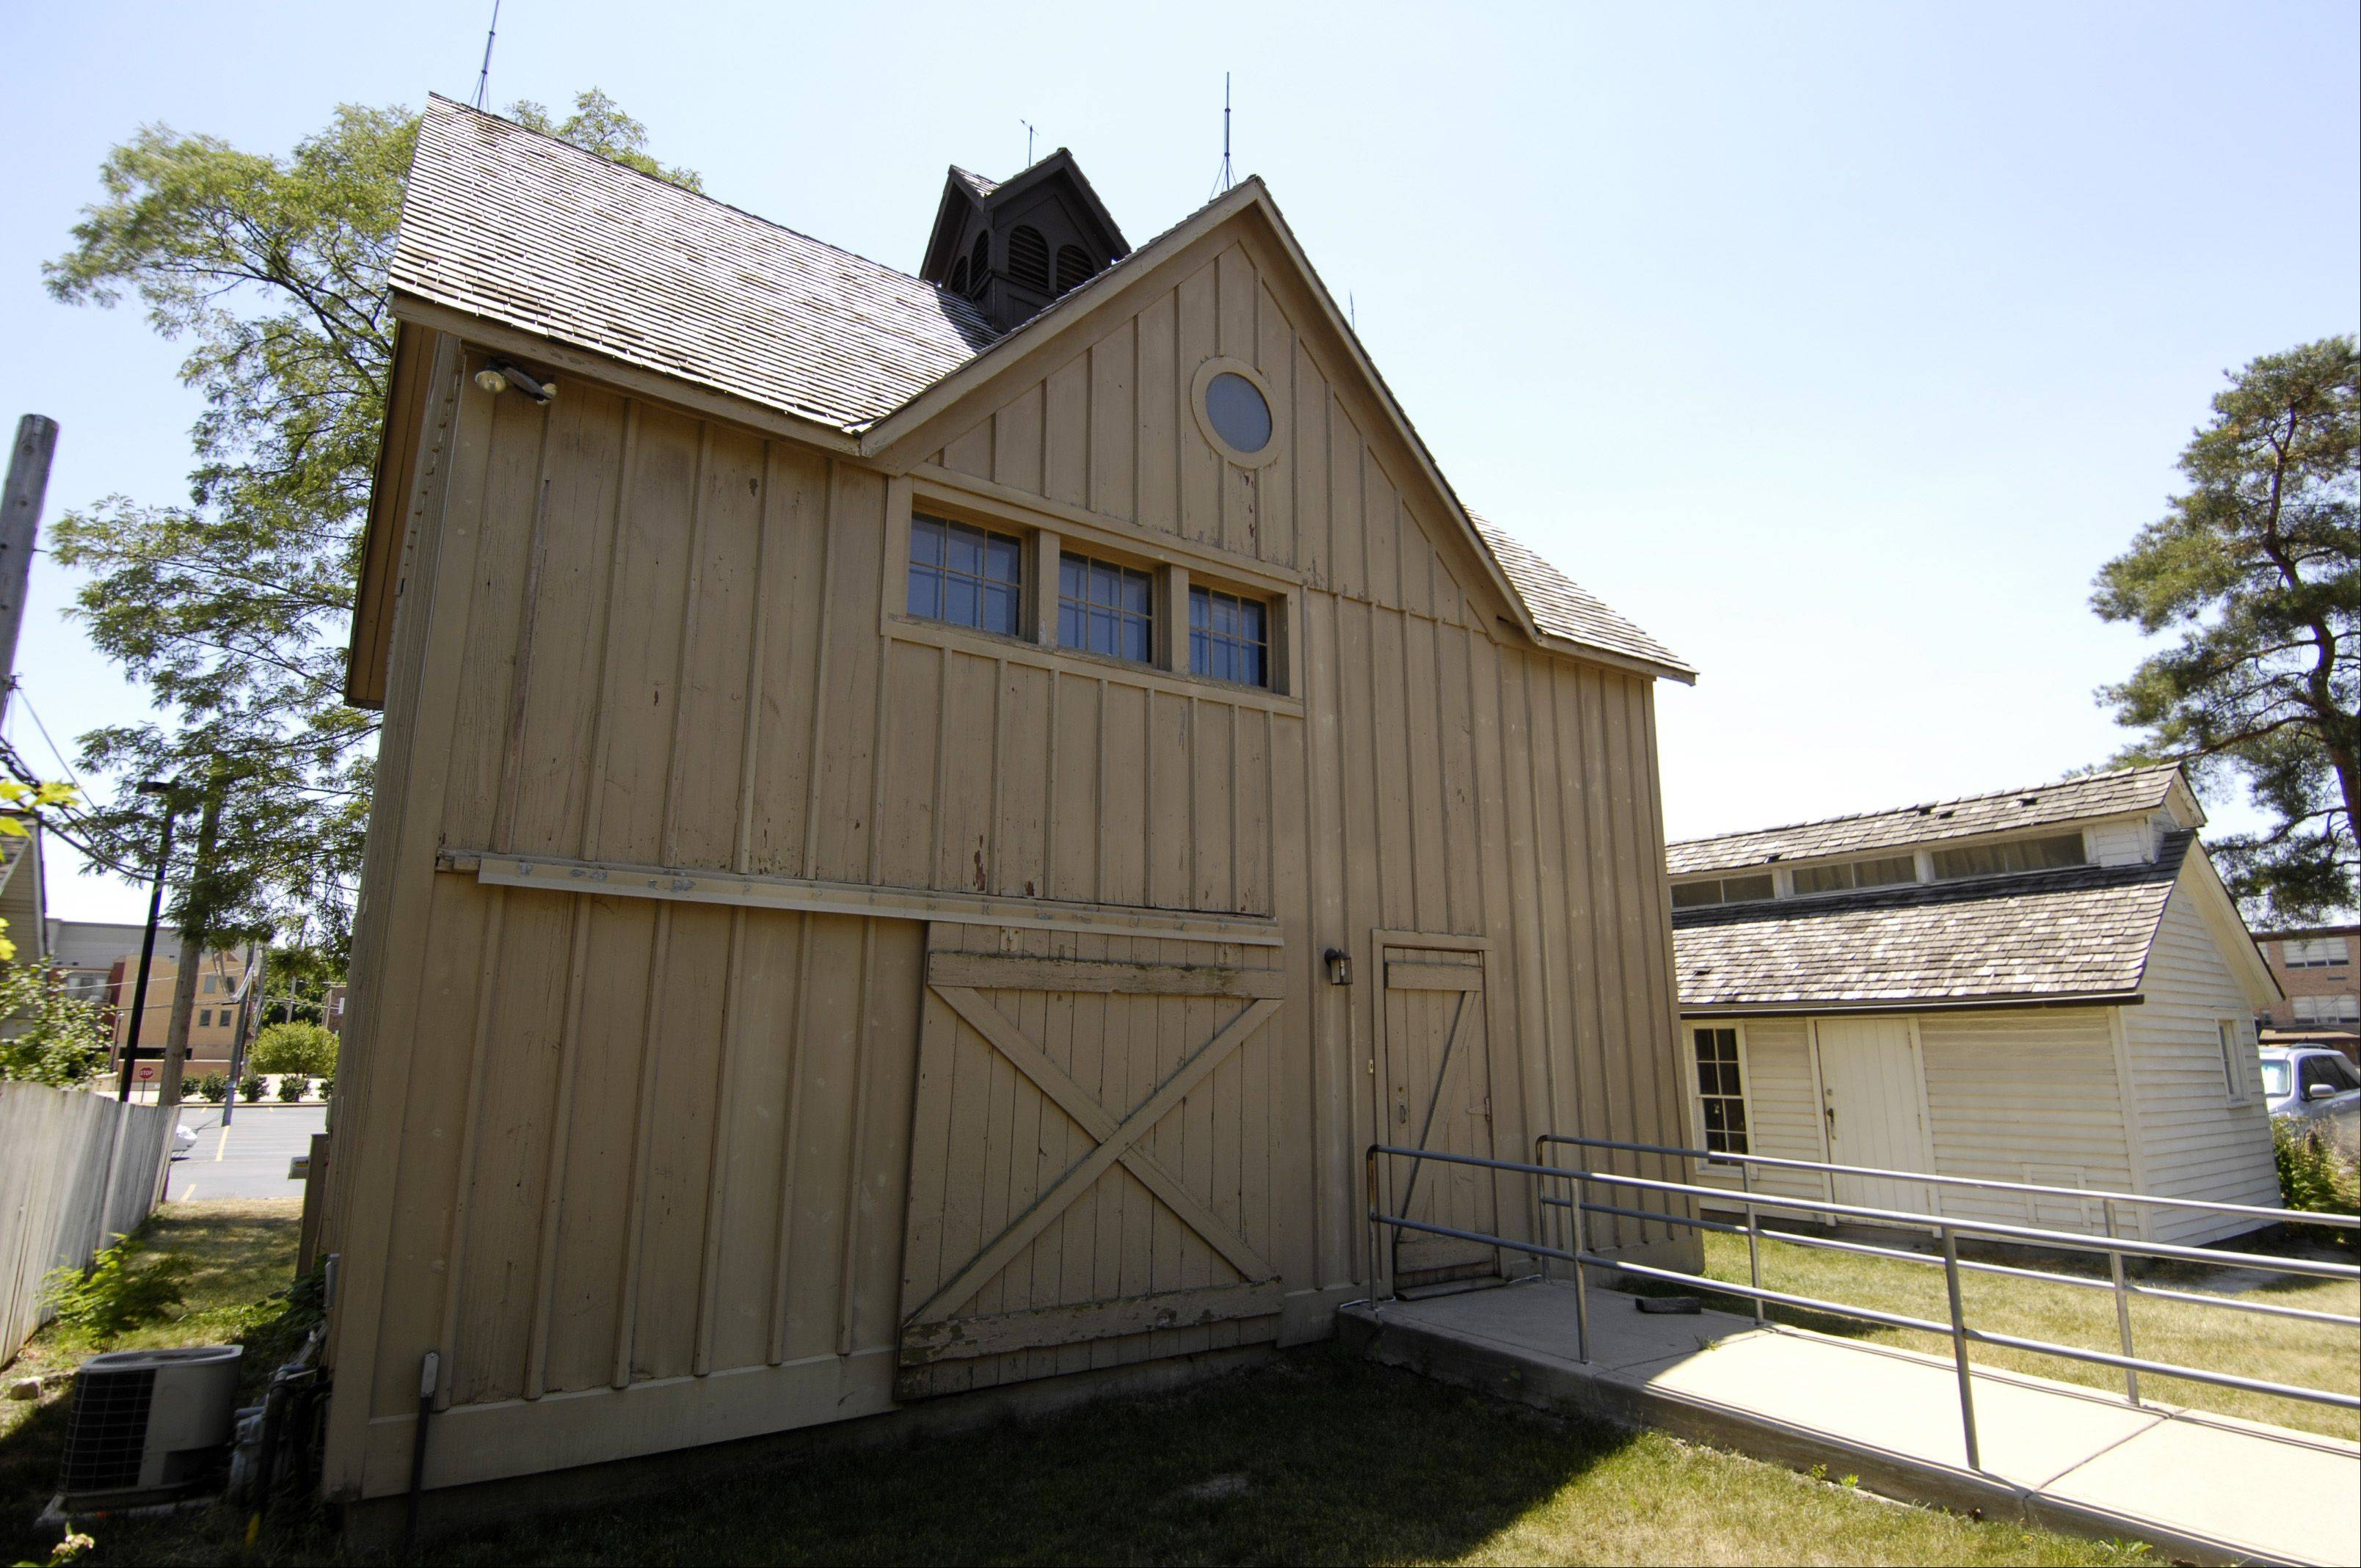 The carriage house at the Lombard Historical Society's Victorian Cottage Museum will be getting a 1,200-square-foot two-story addition, but at a higher cost than originally thought after a contractor that offered a $120,500 bid for the work backed out. The project now will cost $209,000.